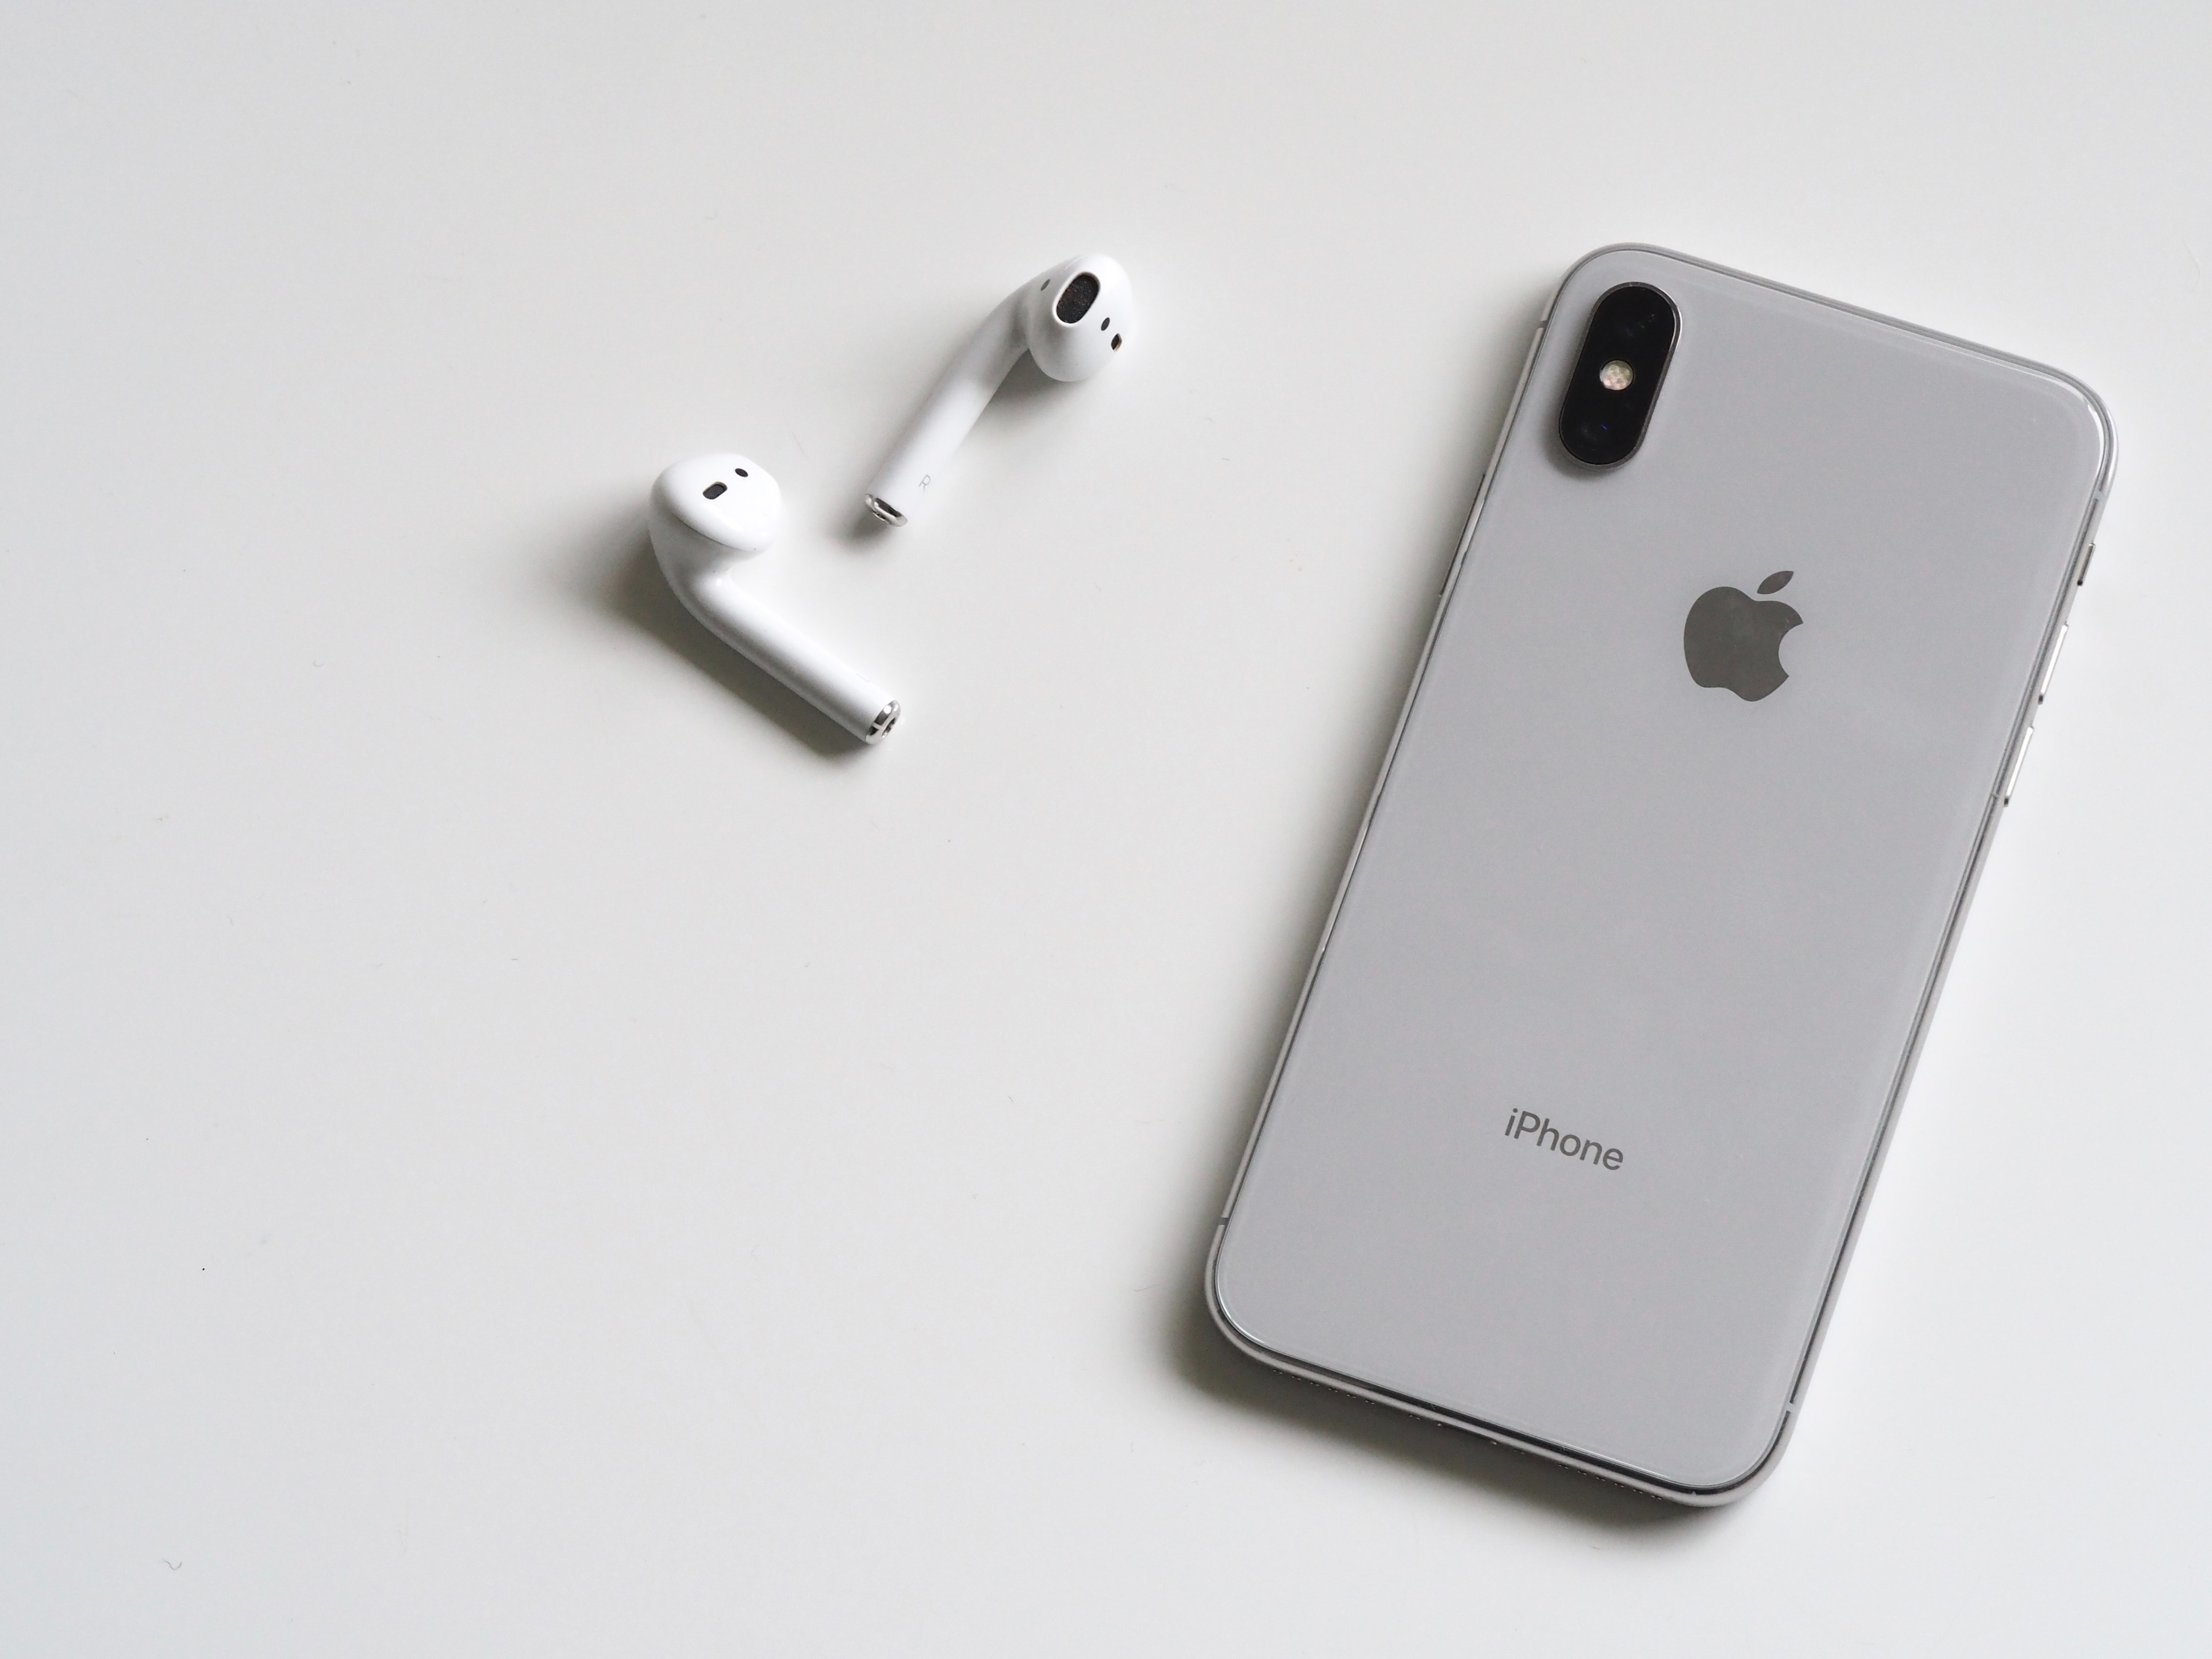 Silver iphone x with airpods photo